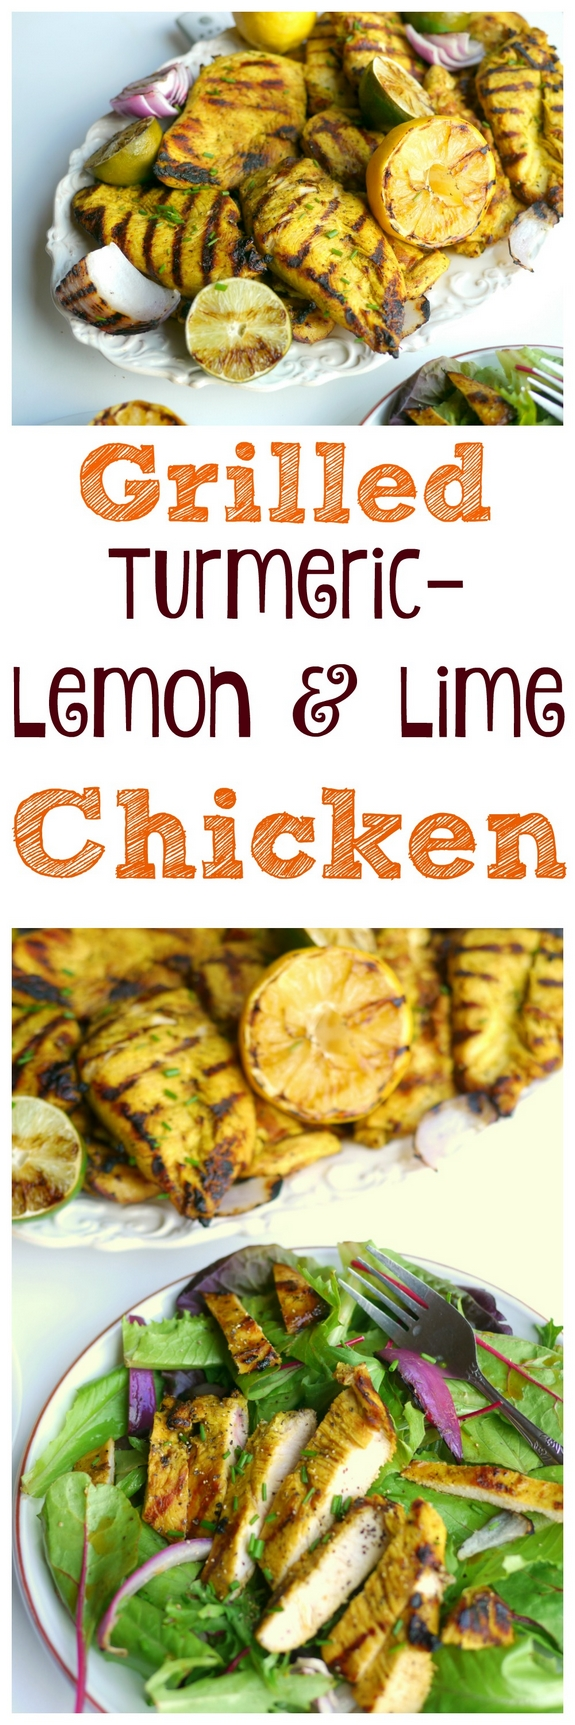 Grilled Turmeric Lemon and Lime Chicken